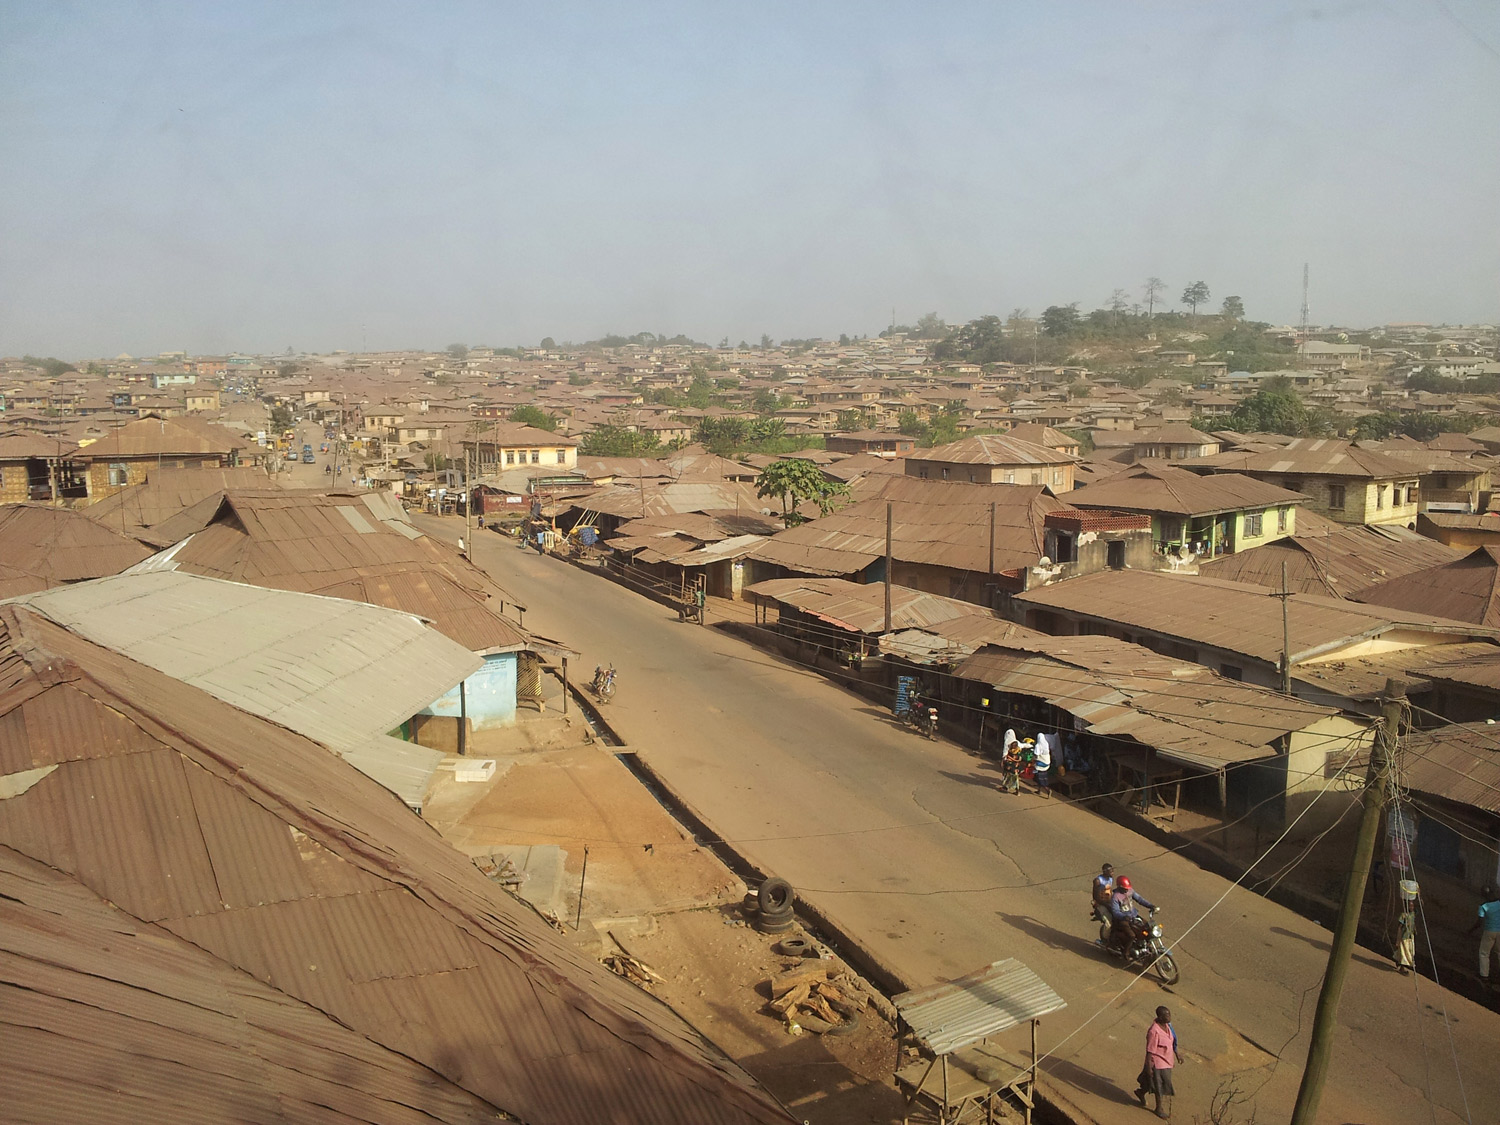 View from 2nd floor Ibokun Road over the city of Osogbo.